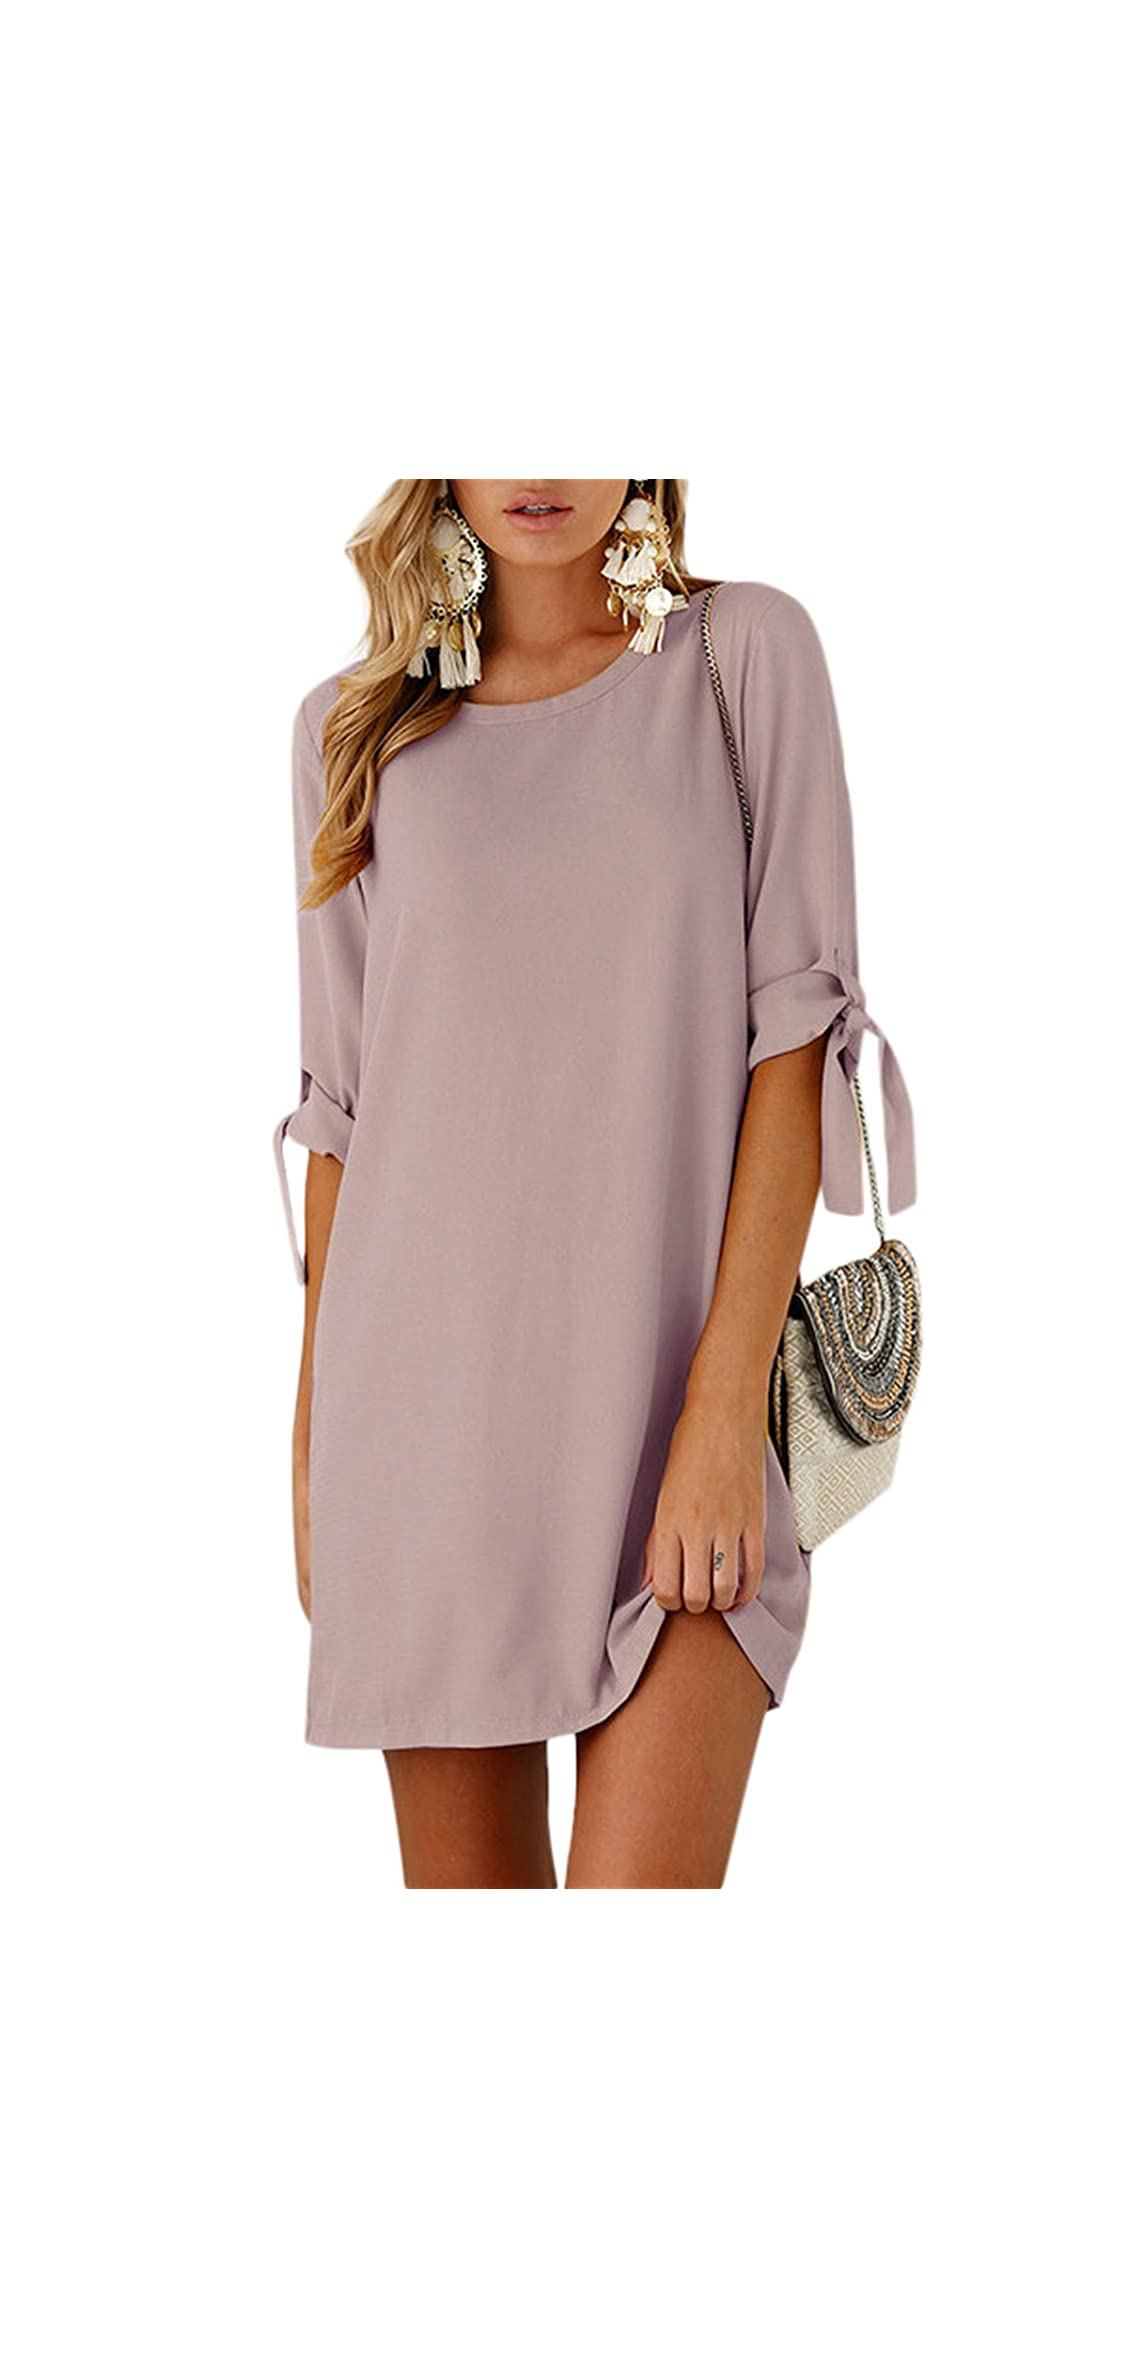 Summer Dresses For Women Half Sleeves T Shirts Solid Crew